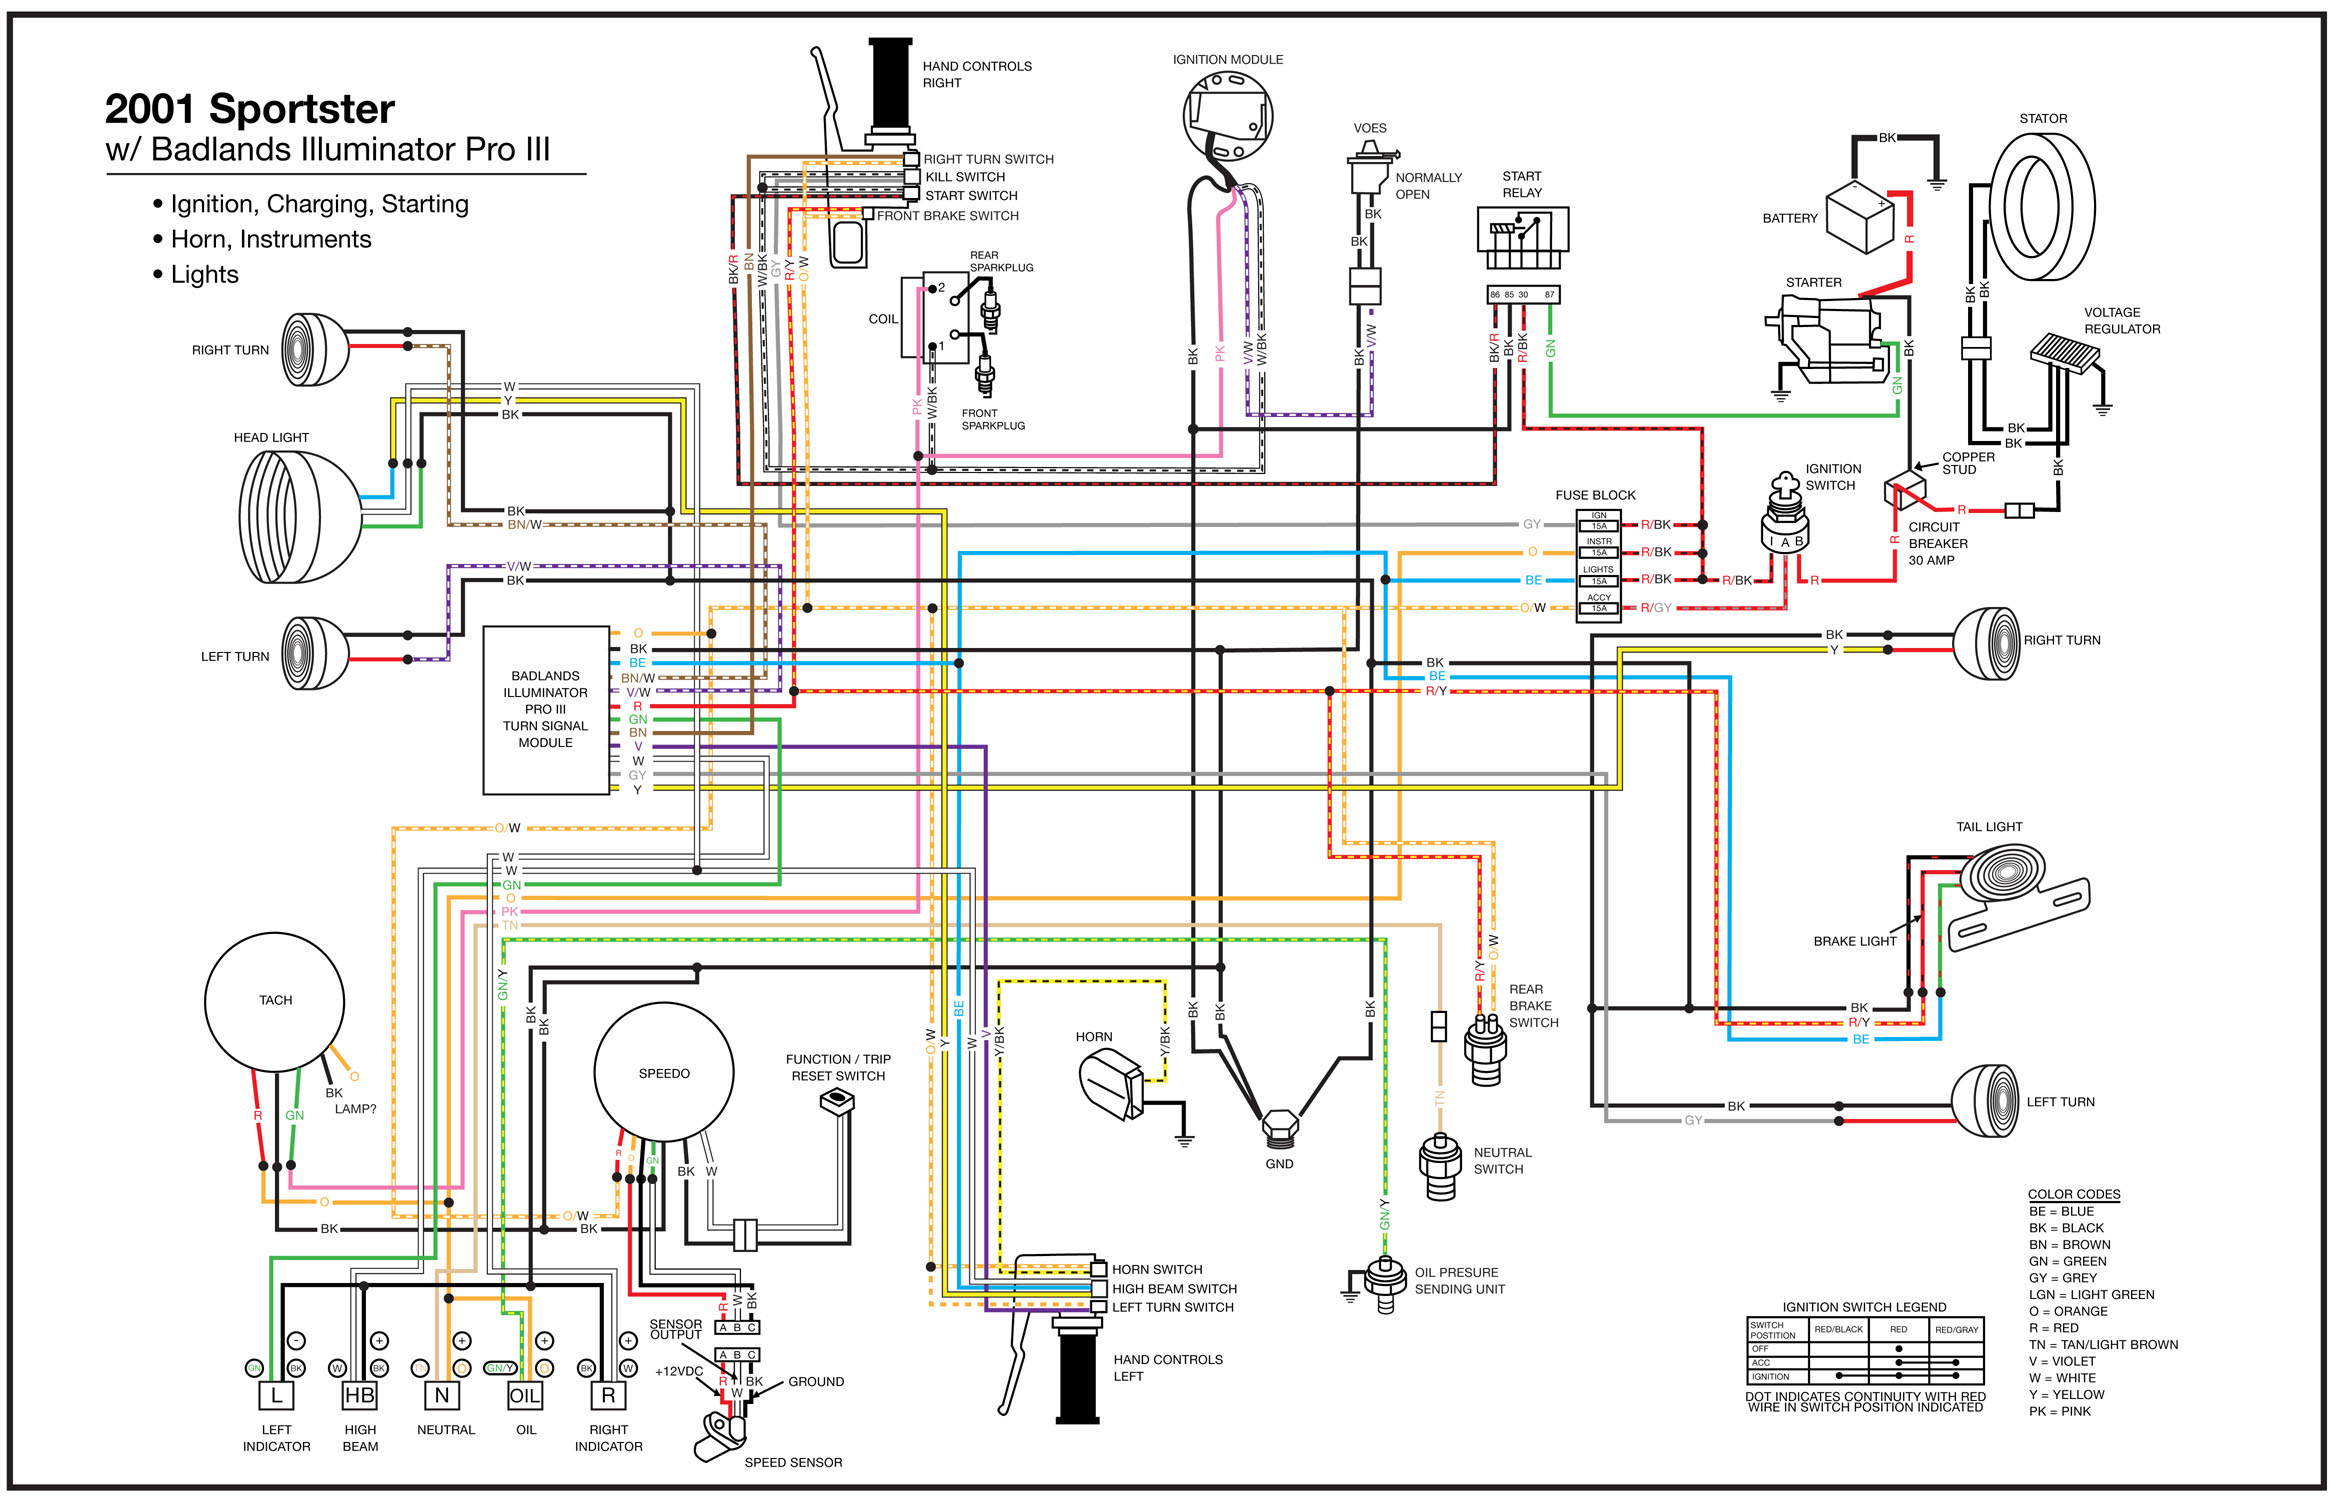 Sportster Badlands_Wiring_Diagram?resize=640%2C410&ssl=1 evo sportster chopper wiring diagram hobbiesxstyle 2001 sportster wiring diagram at alyssarenee.co